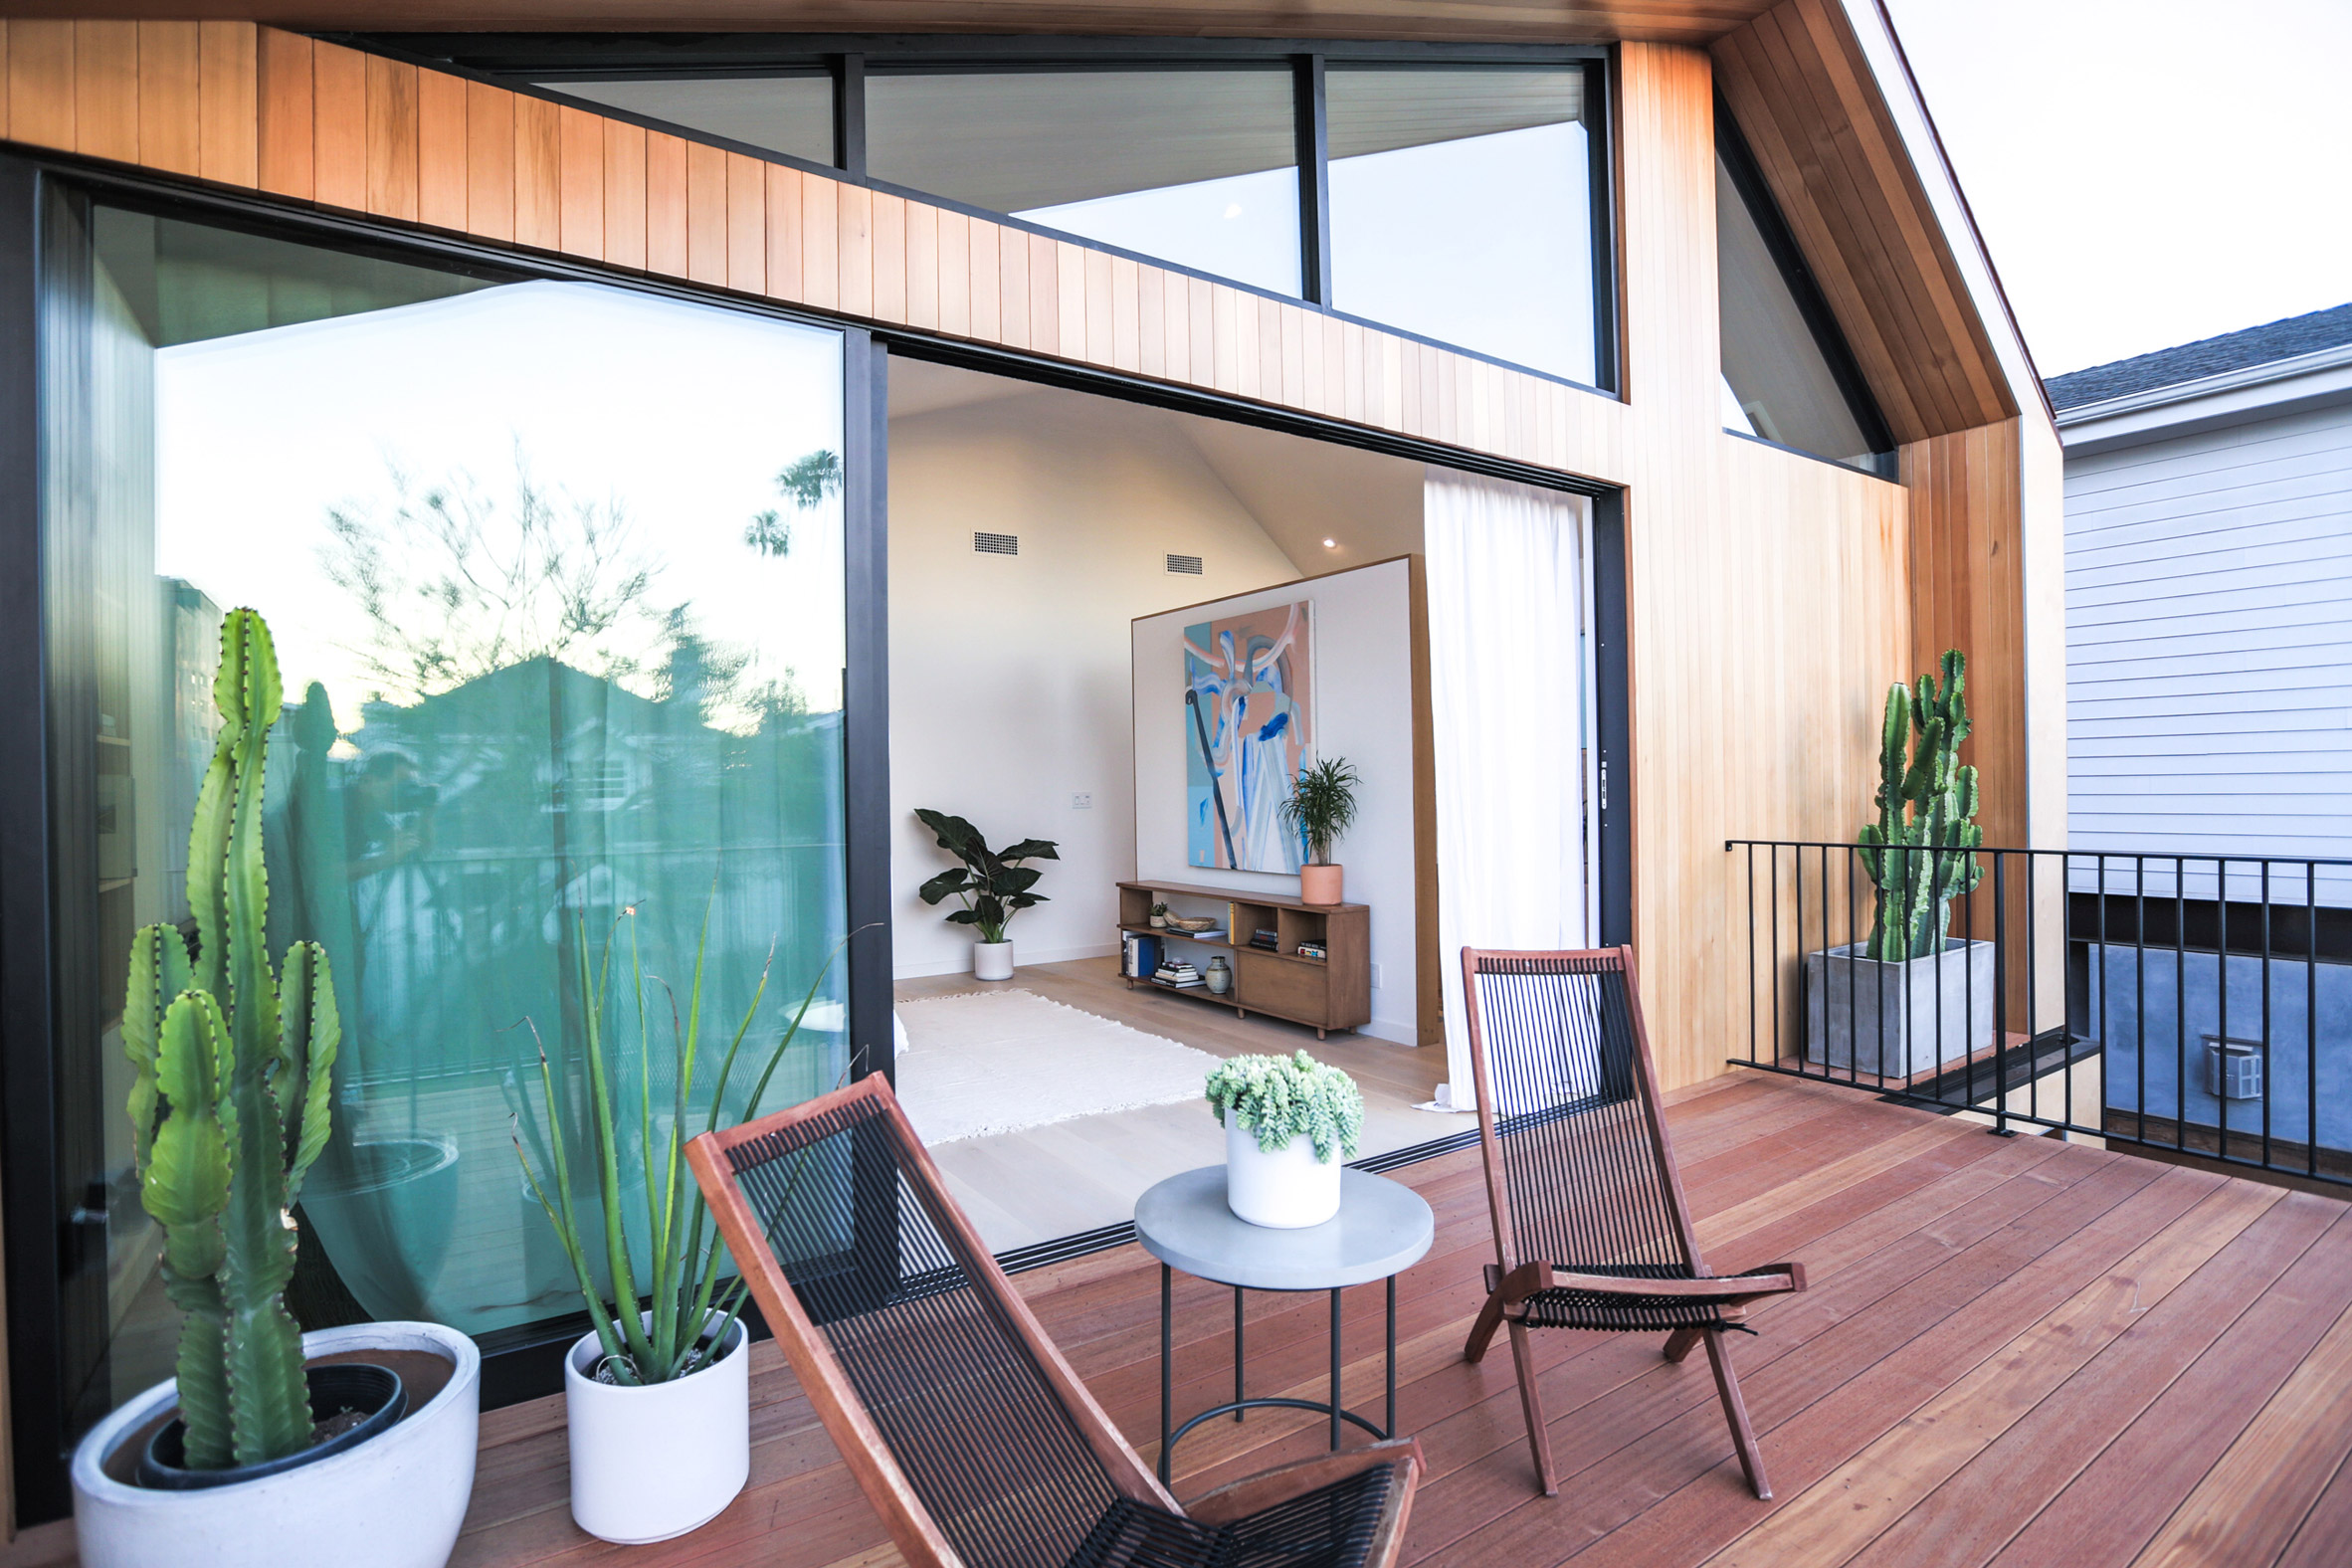 Venice Beach house by Electric Bowery features askew pitched roof and outdoor lounge